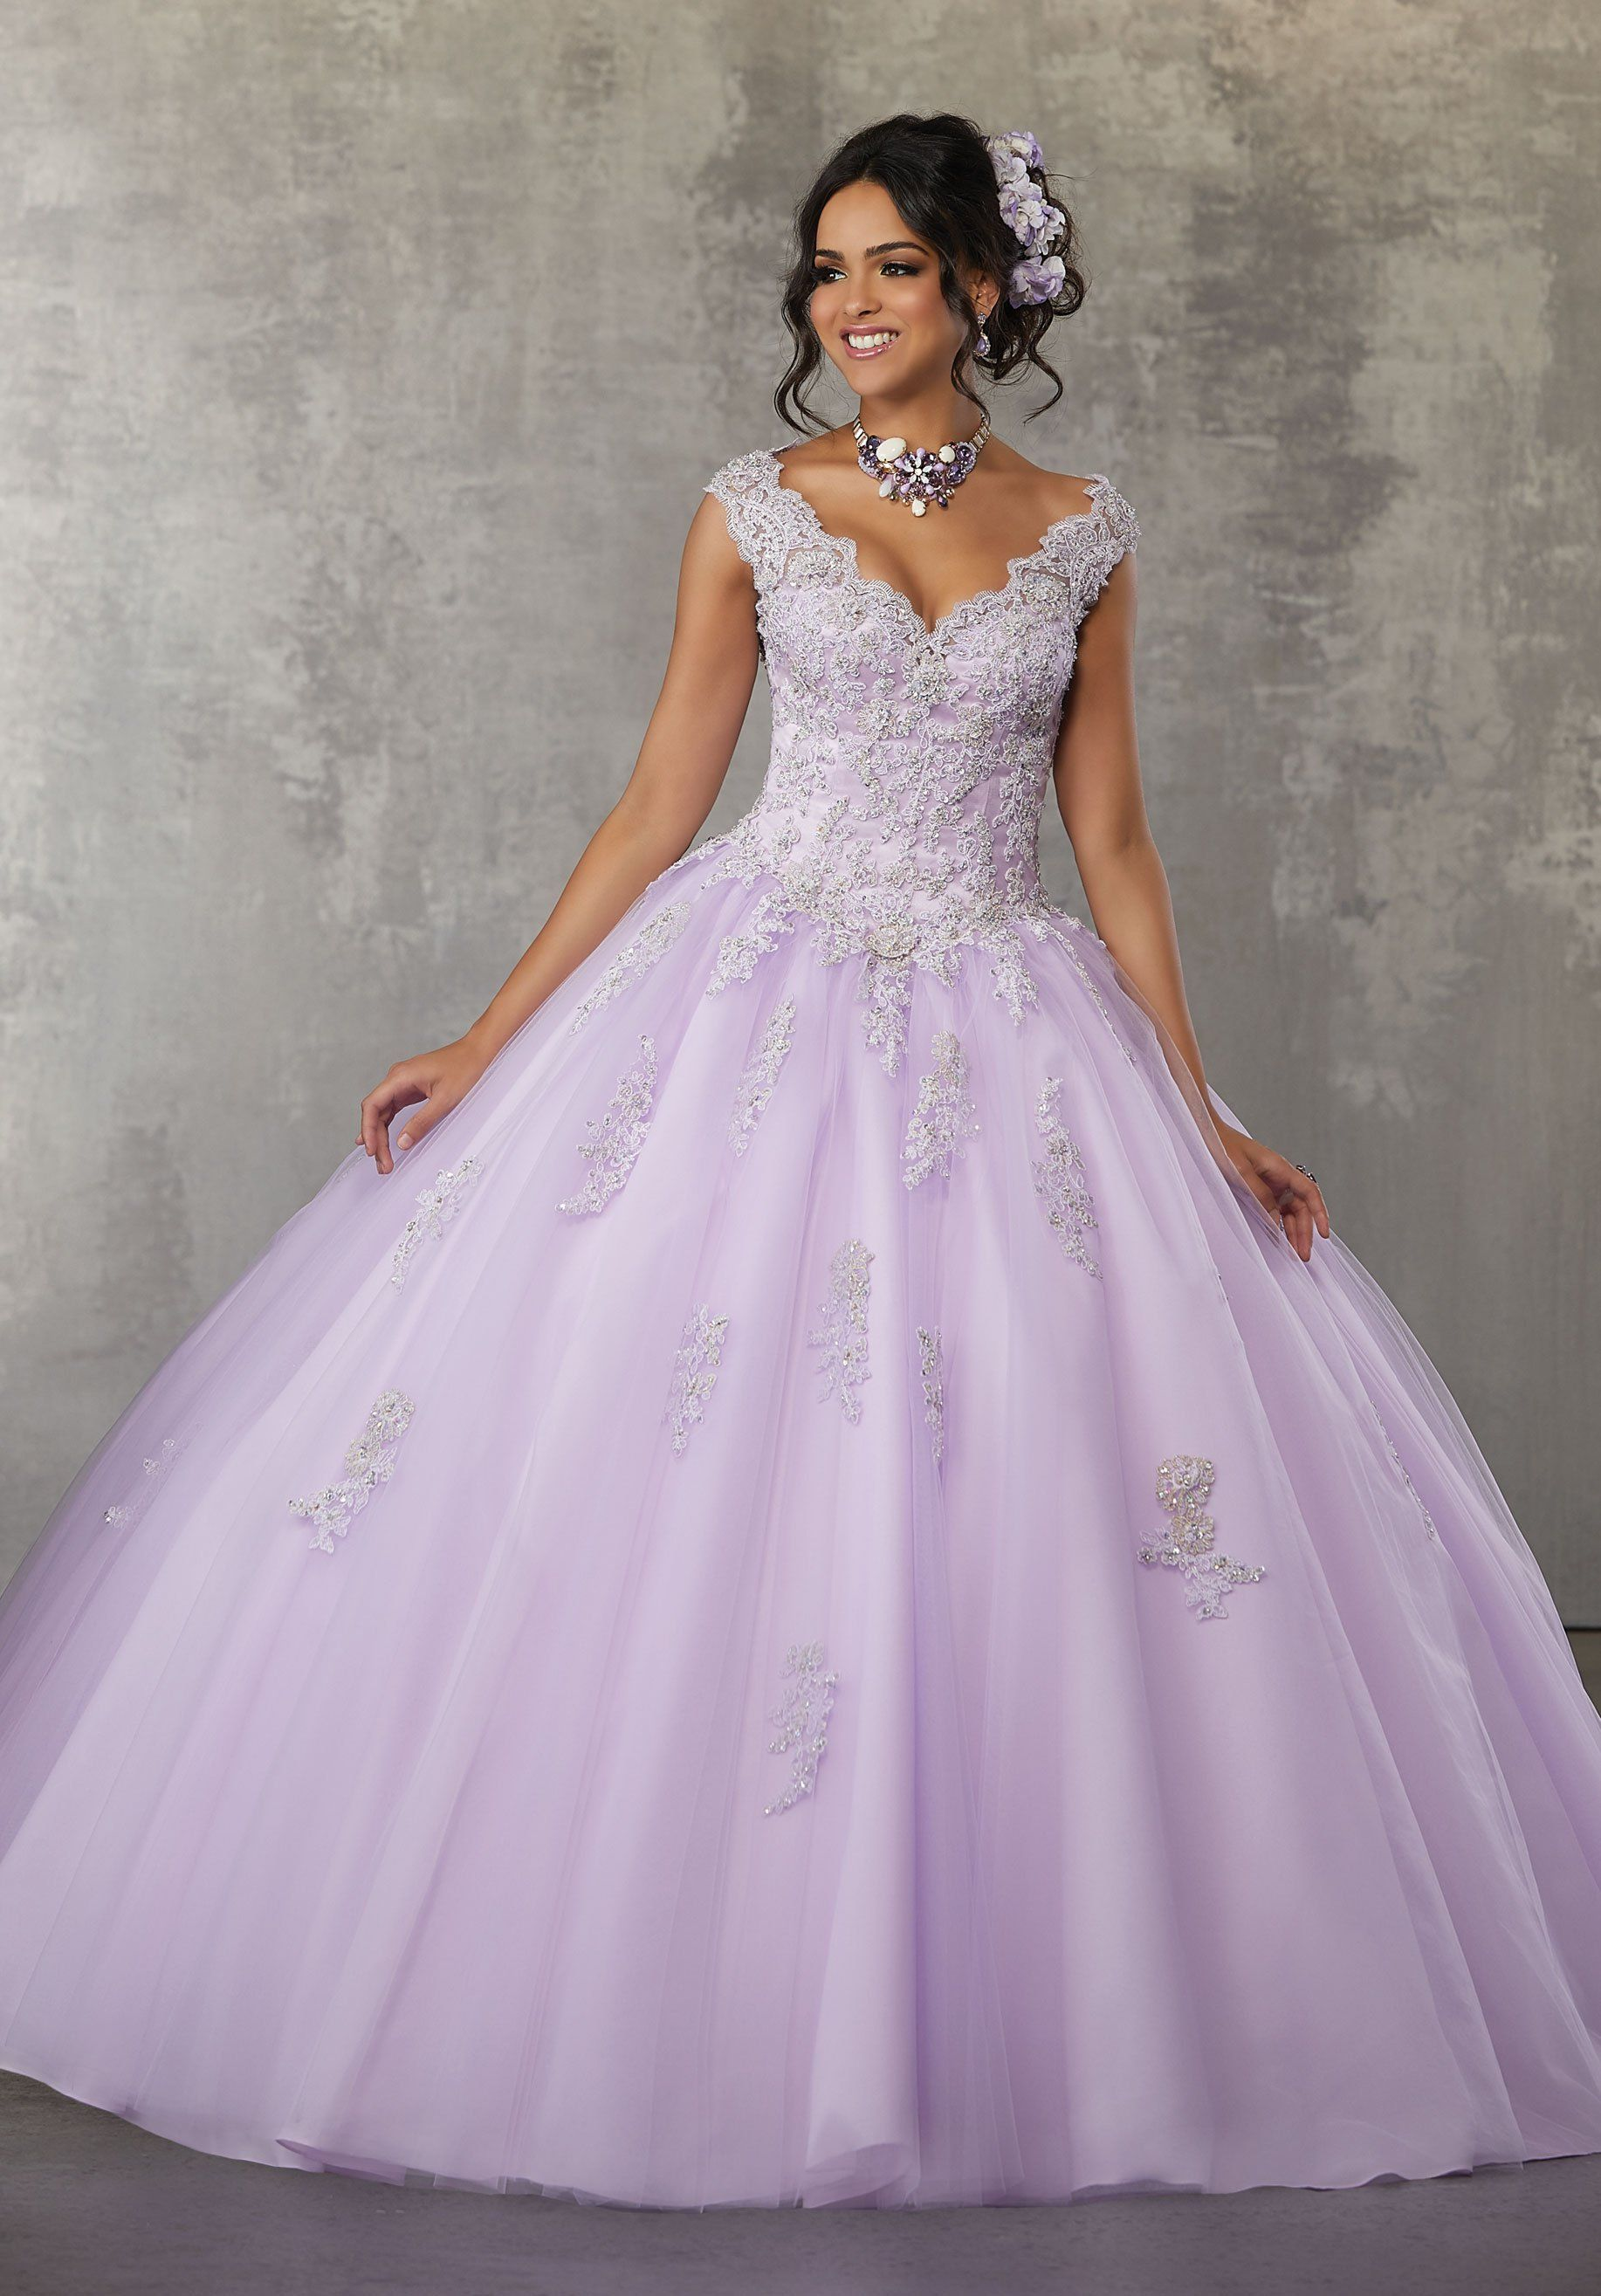 8d26109f122 Cap Sleeve Lace Quinceanera Dress by Mori Lee Valencia 60033